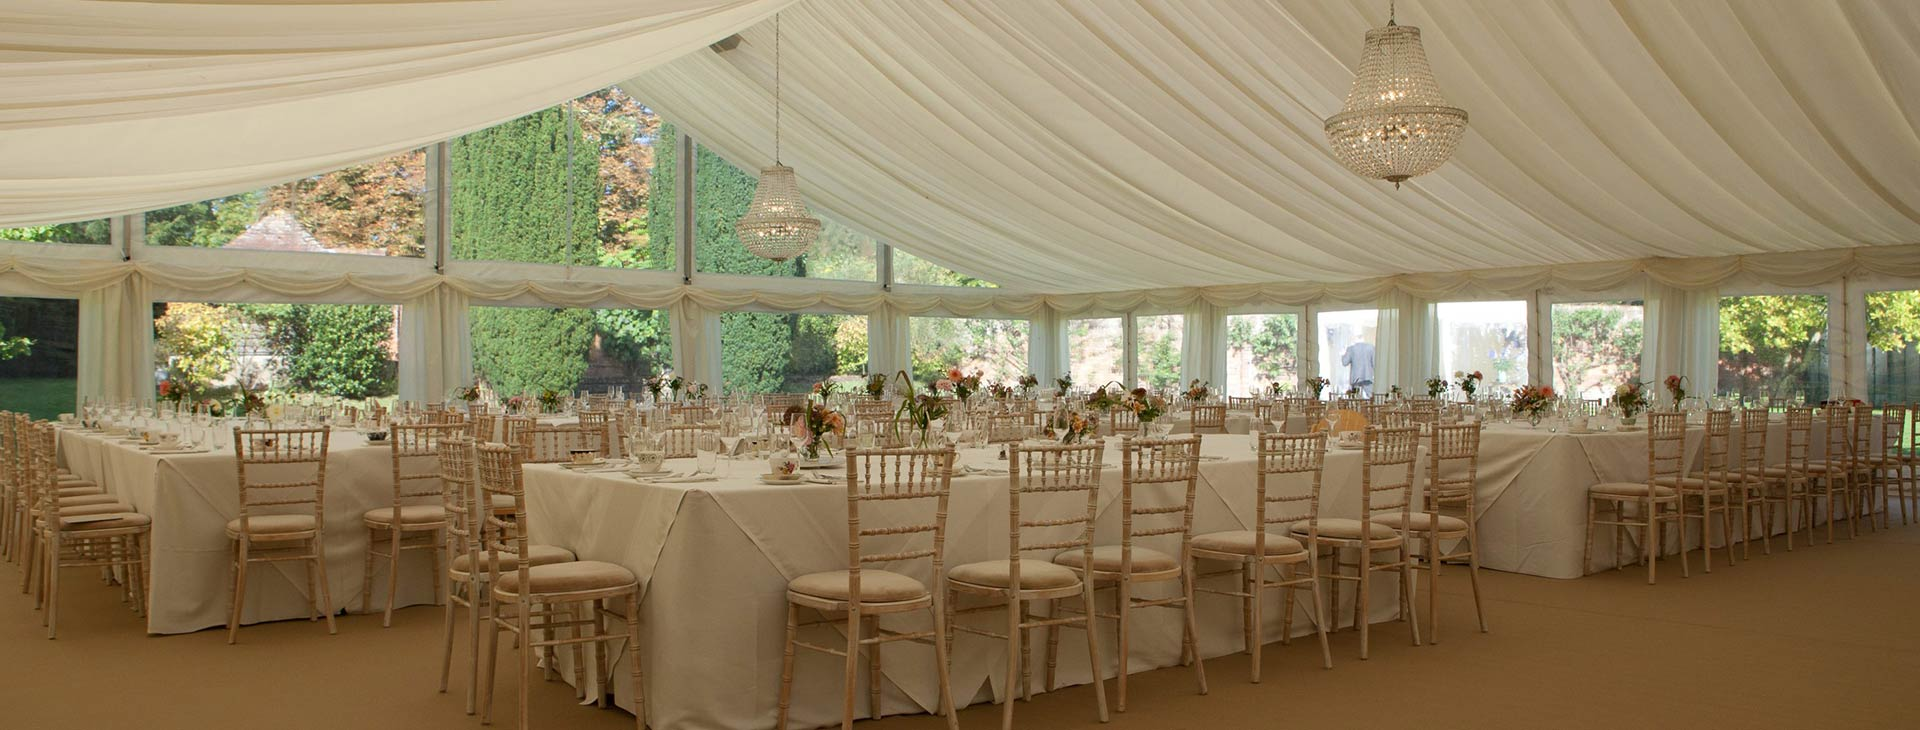 wedding table set up in summer marquee